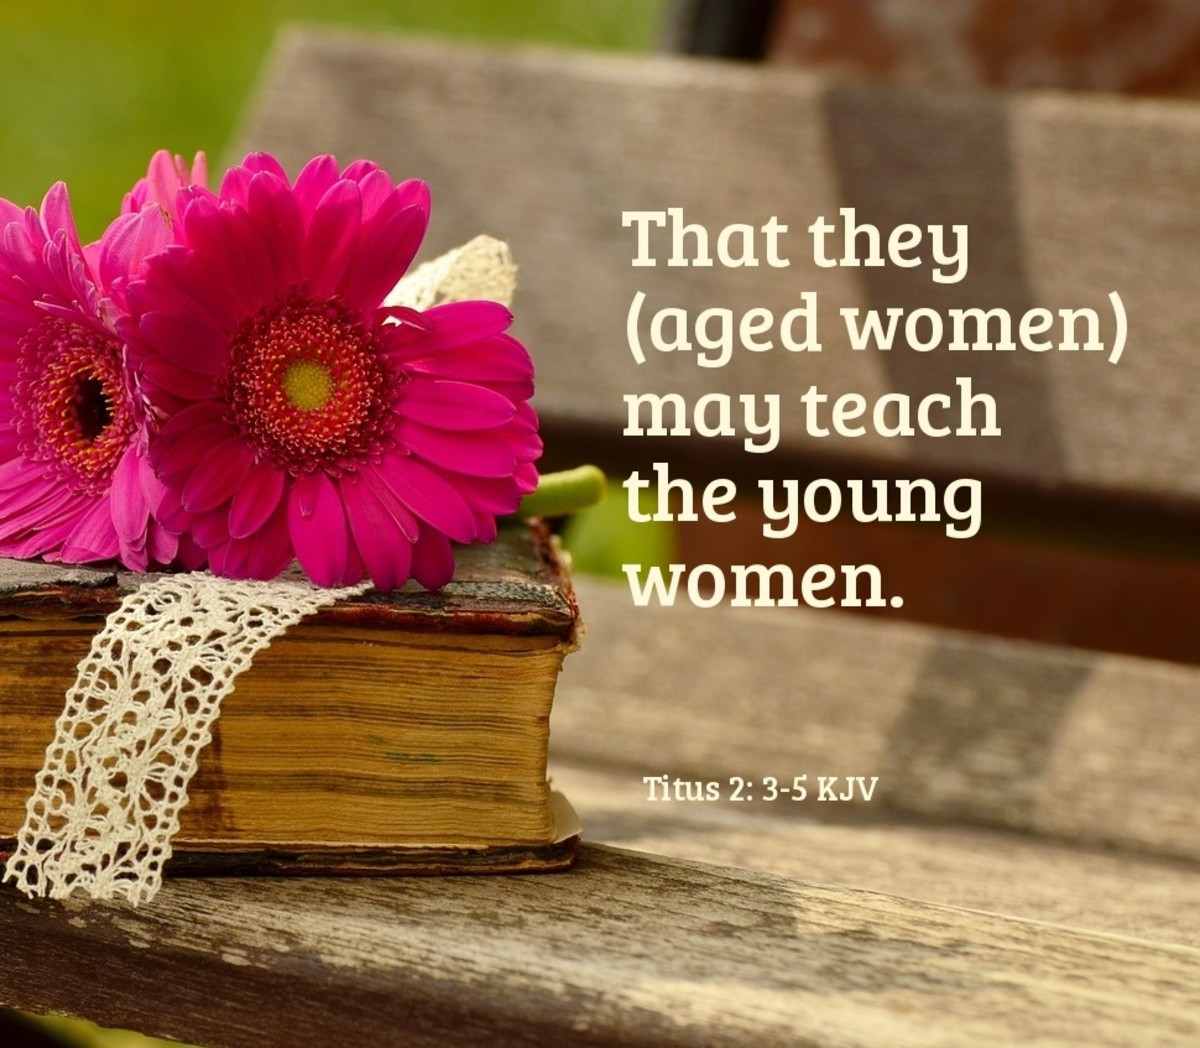 Bible Curriculum for Training of Younger Women